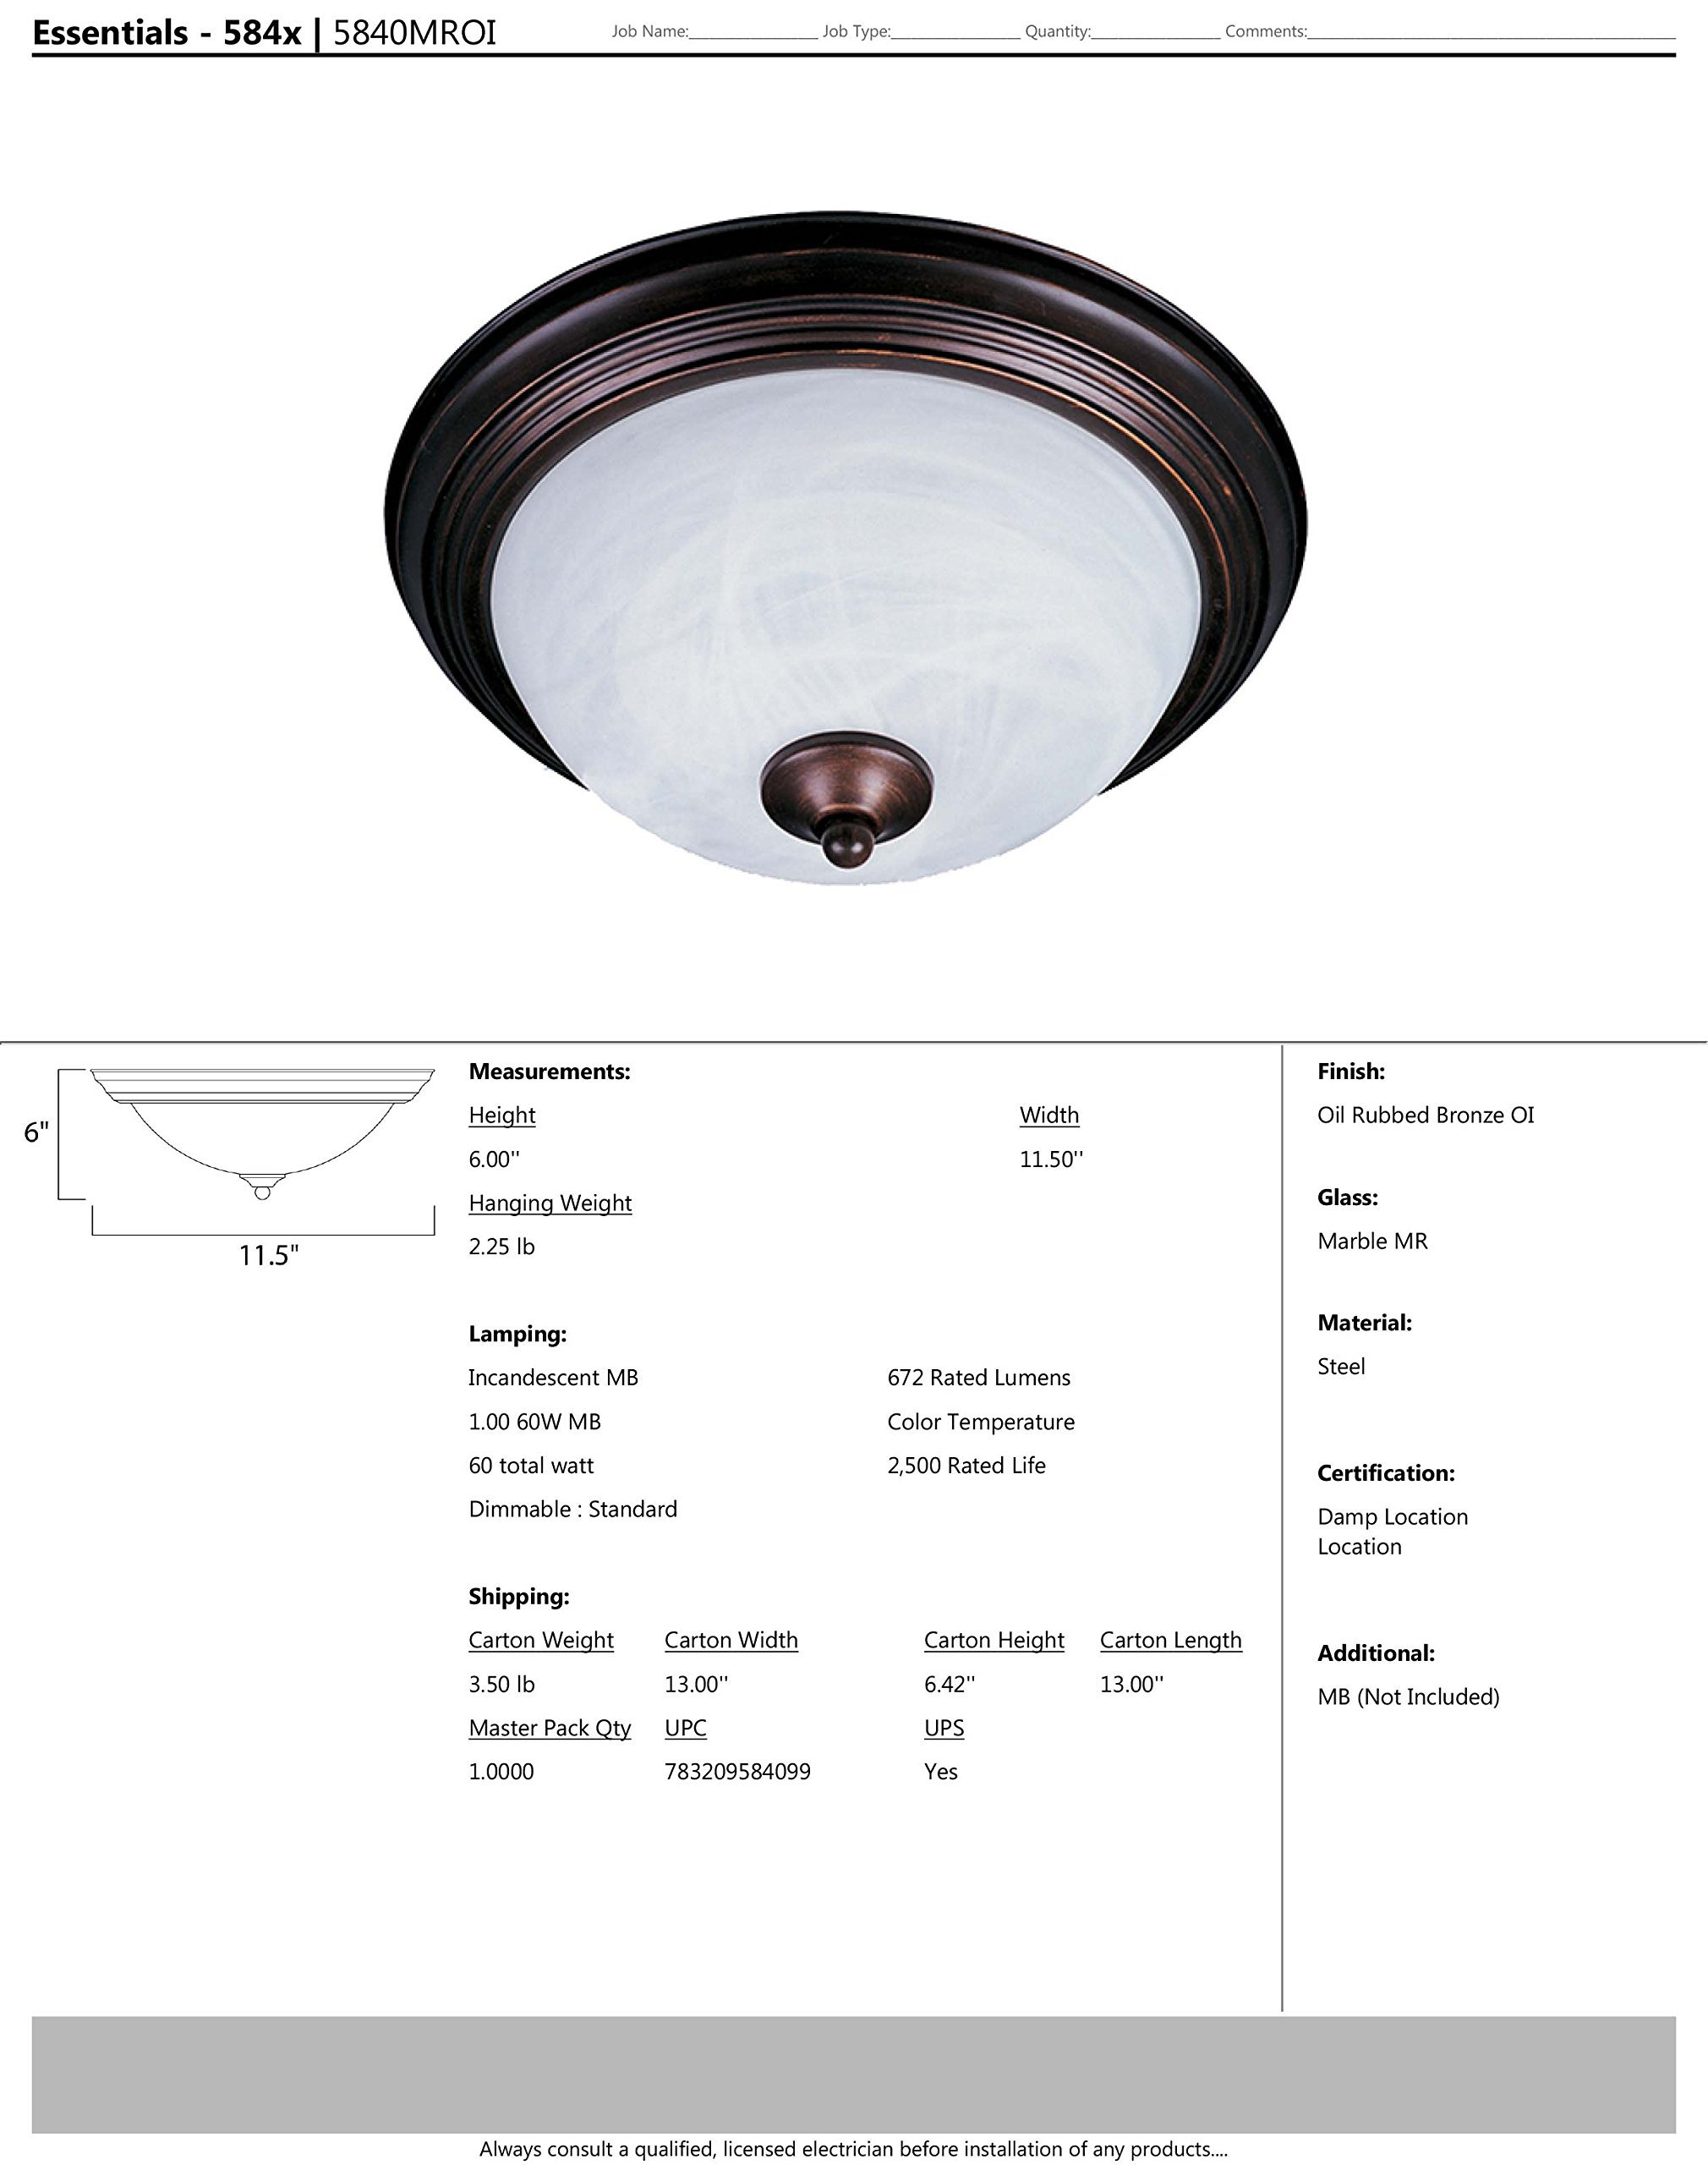 Maxim 5840MROI Essentials 1-Light Flush Mount, Oil Rubbed Bronze Finish, Marble Glass, MB Incandescent Incandescent Bulb , 13W Max., Dry Safety Rating, 2700K Color Temp, Glass Shade Material, 4500 Rated Lumens by Maxim Lighting (Image #1)